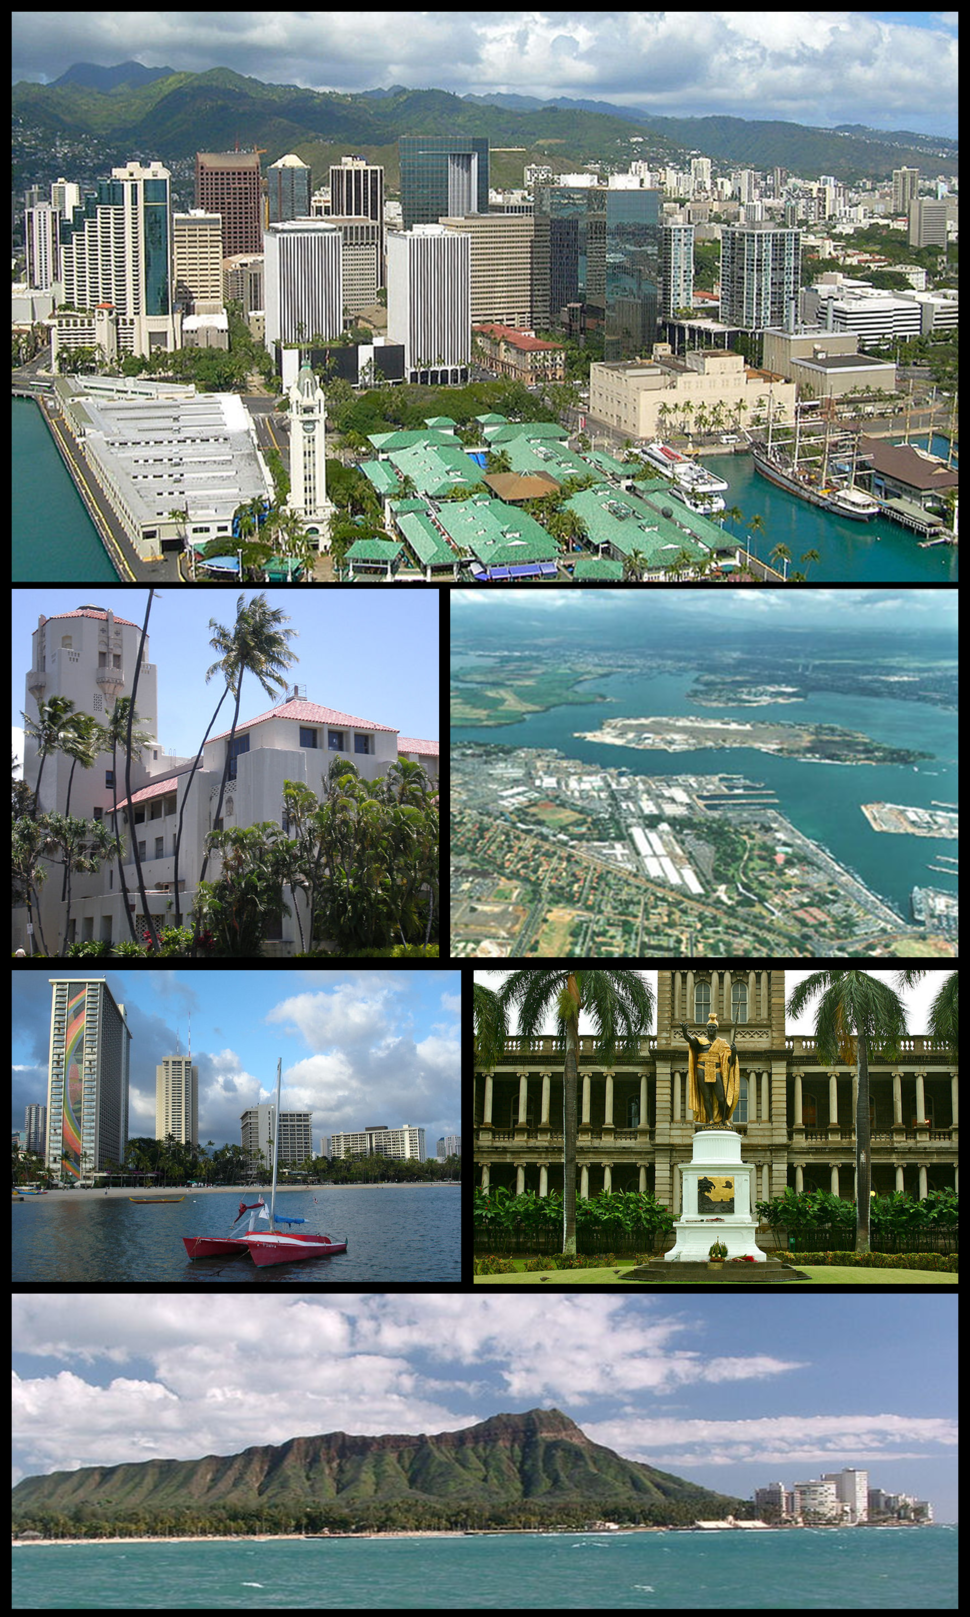 Clockwise from top: Aerial view of Downtown Honolulu, Pearl Harbor right outside the city, statue of King Kamehameha I in front of Ali'iolani Hale downtown, Diamond Head, waterfront on Waikiki Beach, and Honolulu Hale (City Hall)